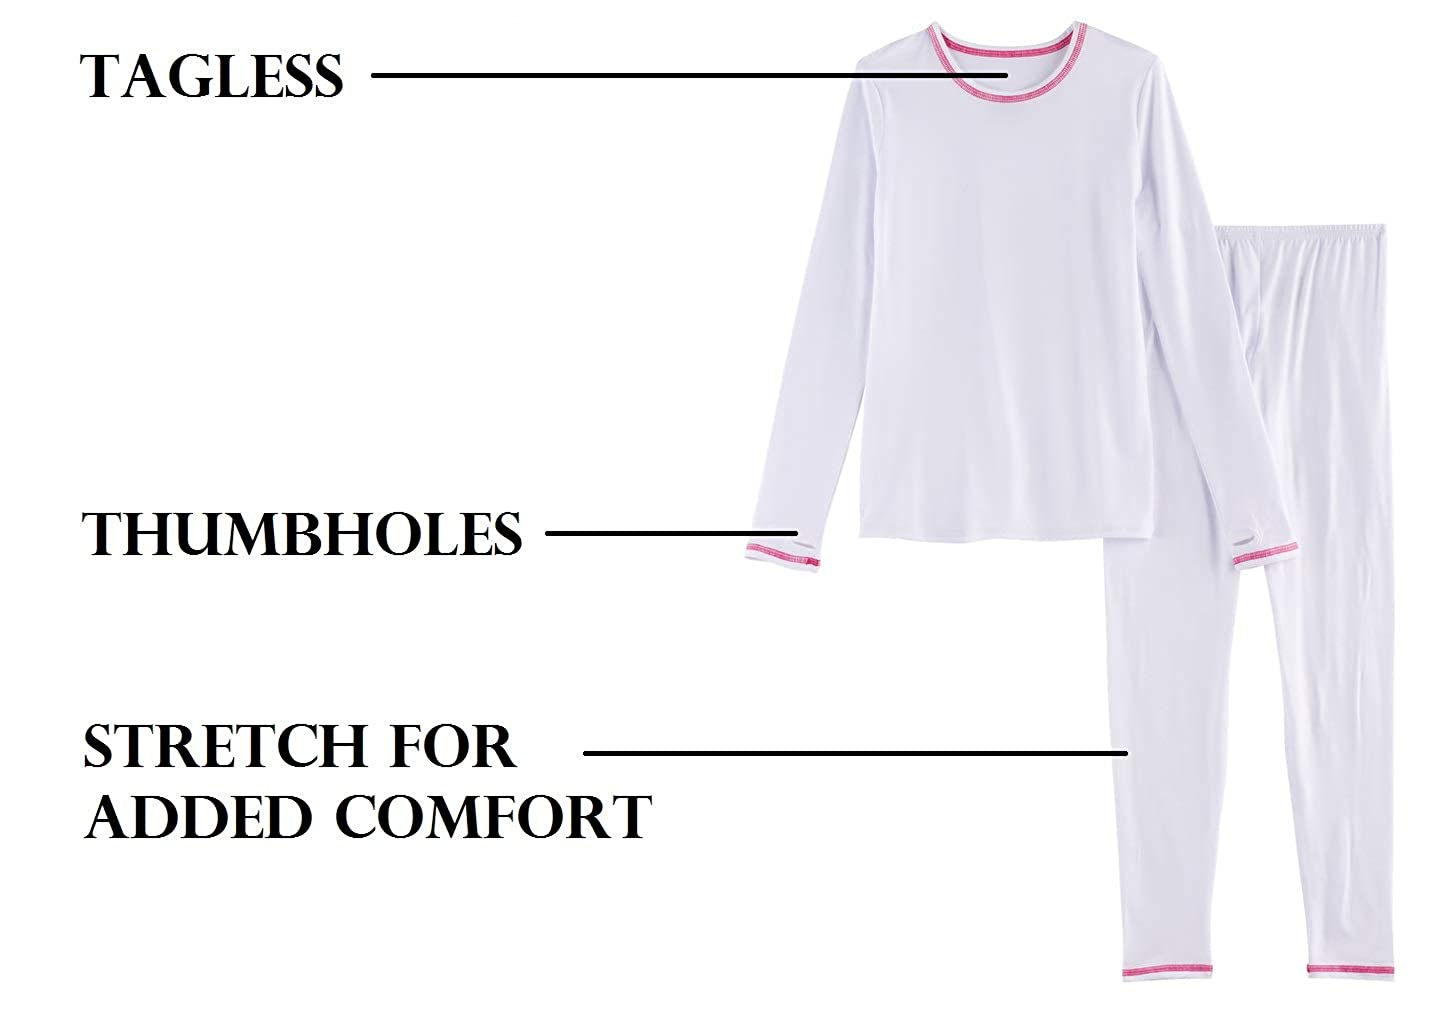 Girls Winter Base-Layer Thermal Underwear top and Bottom Set with Thumbhole Active  Base Layers